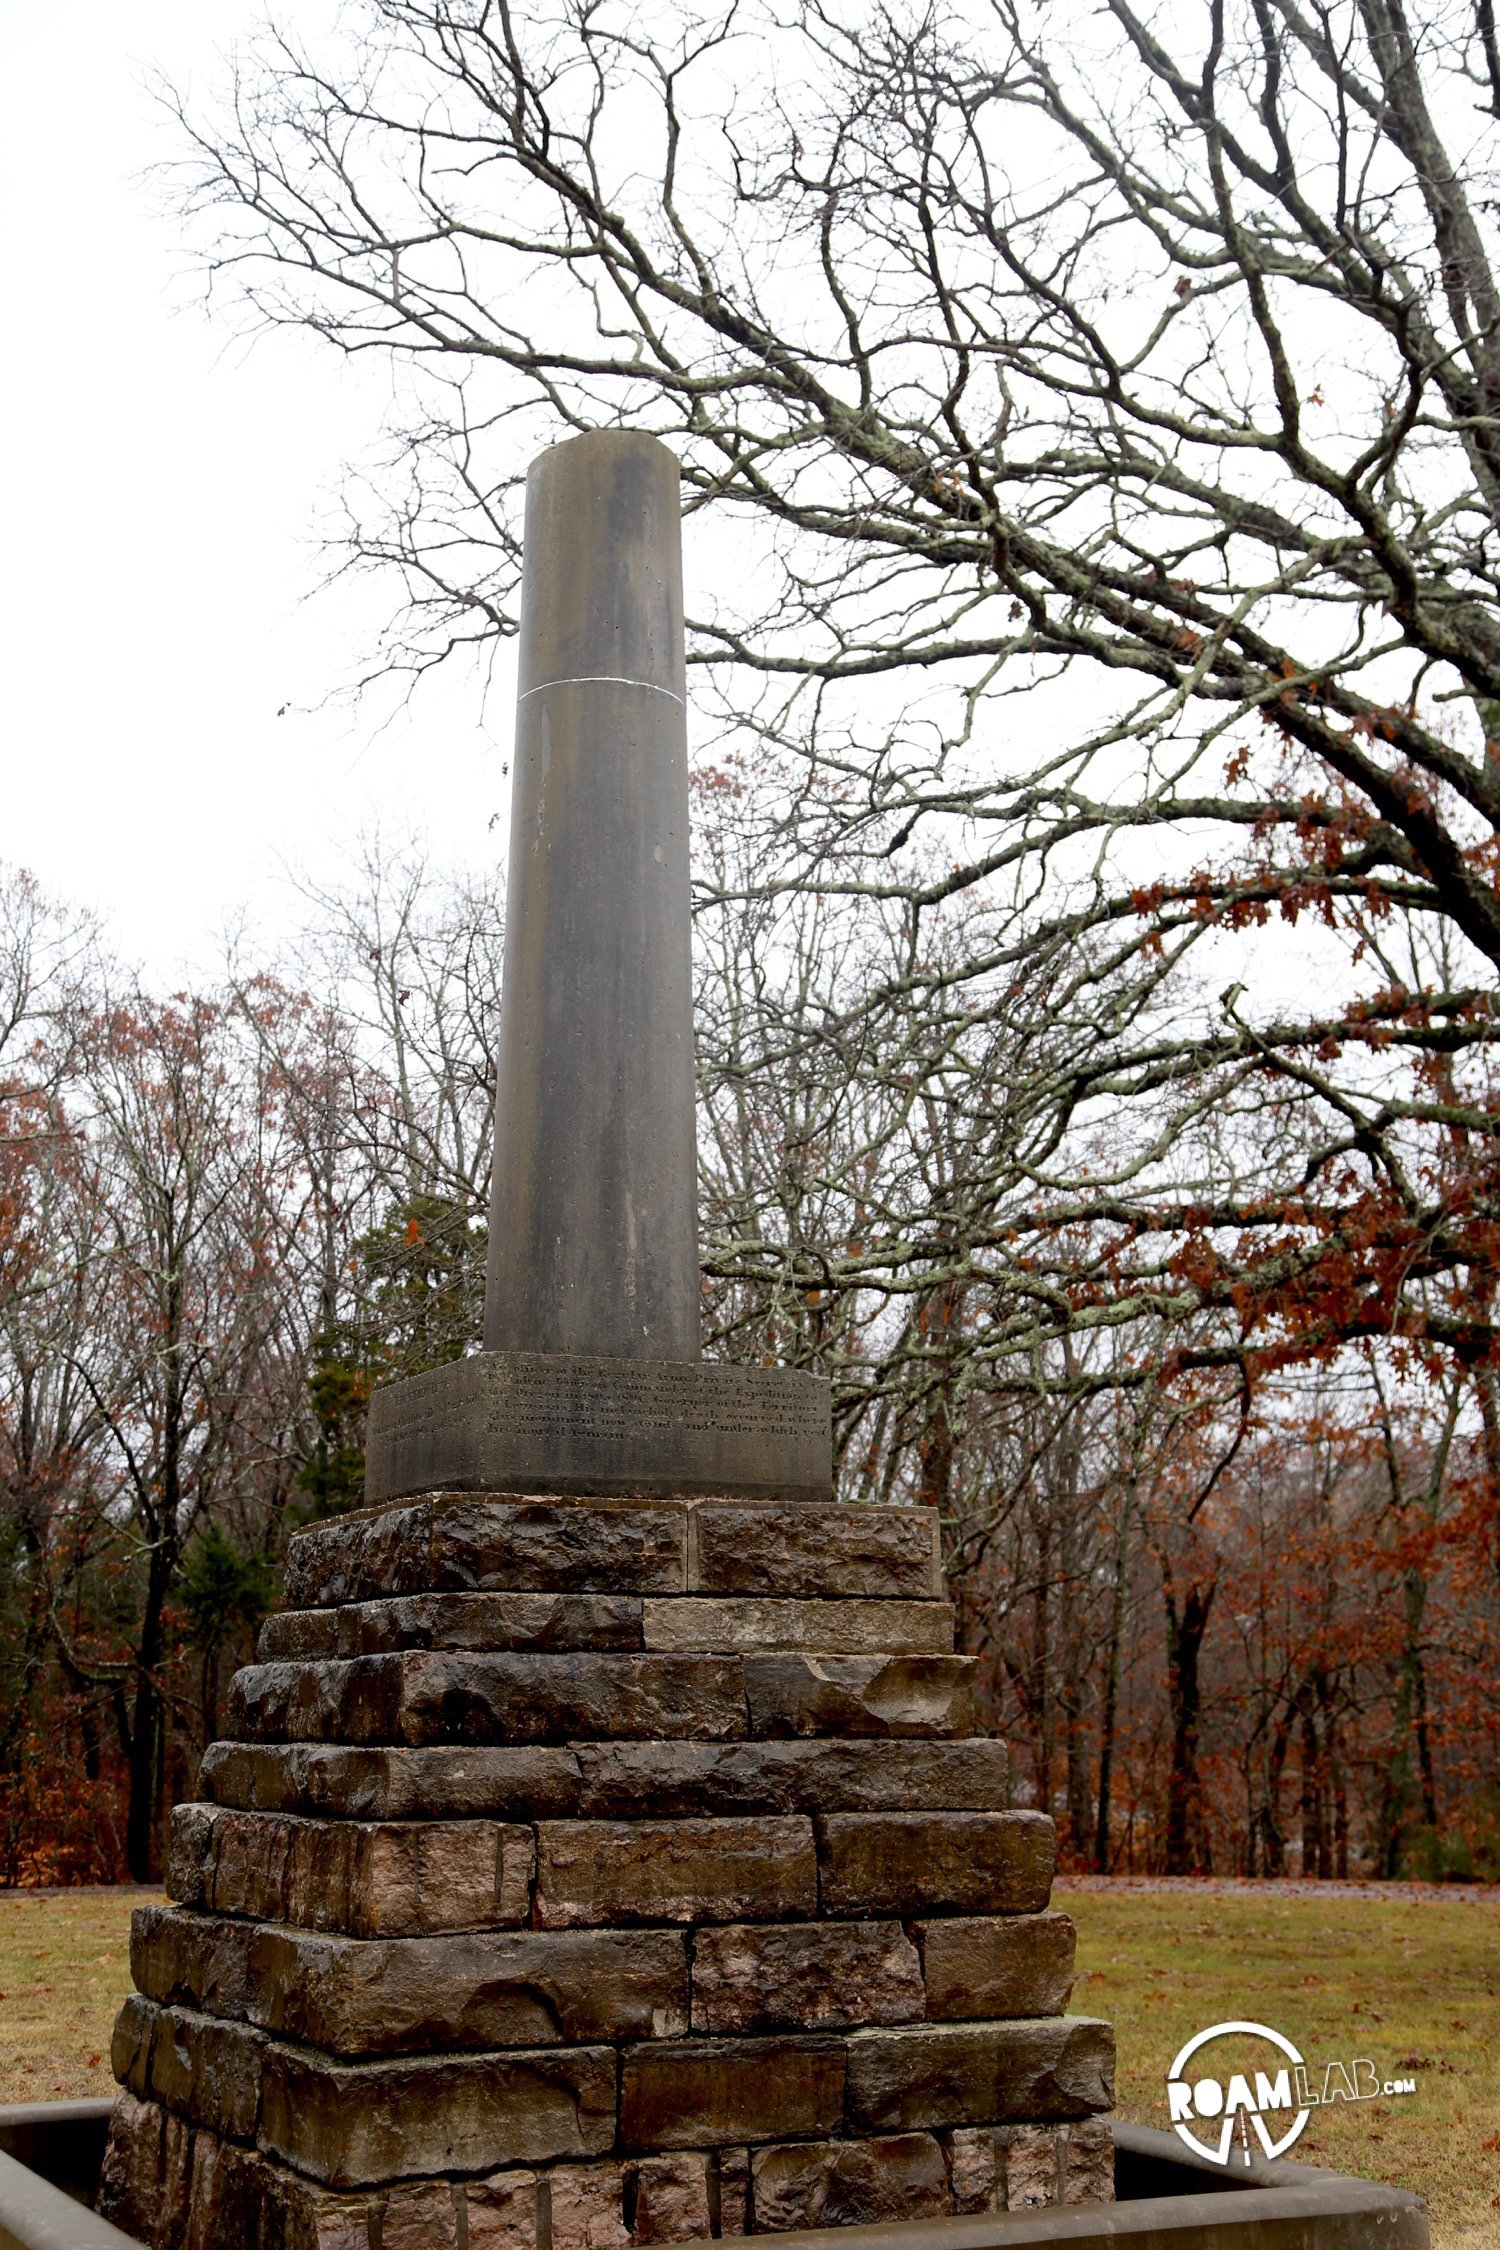 The Meriwether Lewis Monument commemorates the life of the celebrated adventurer and marks the location at Grinder's Mill along the Natchez Trace, where he met his untimely end.